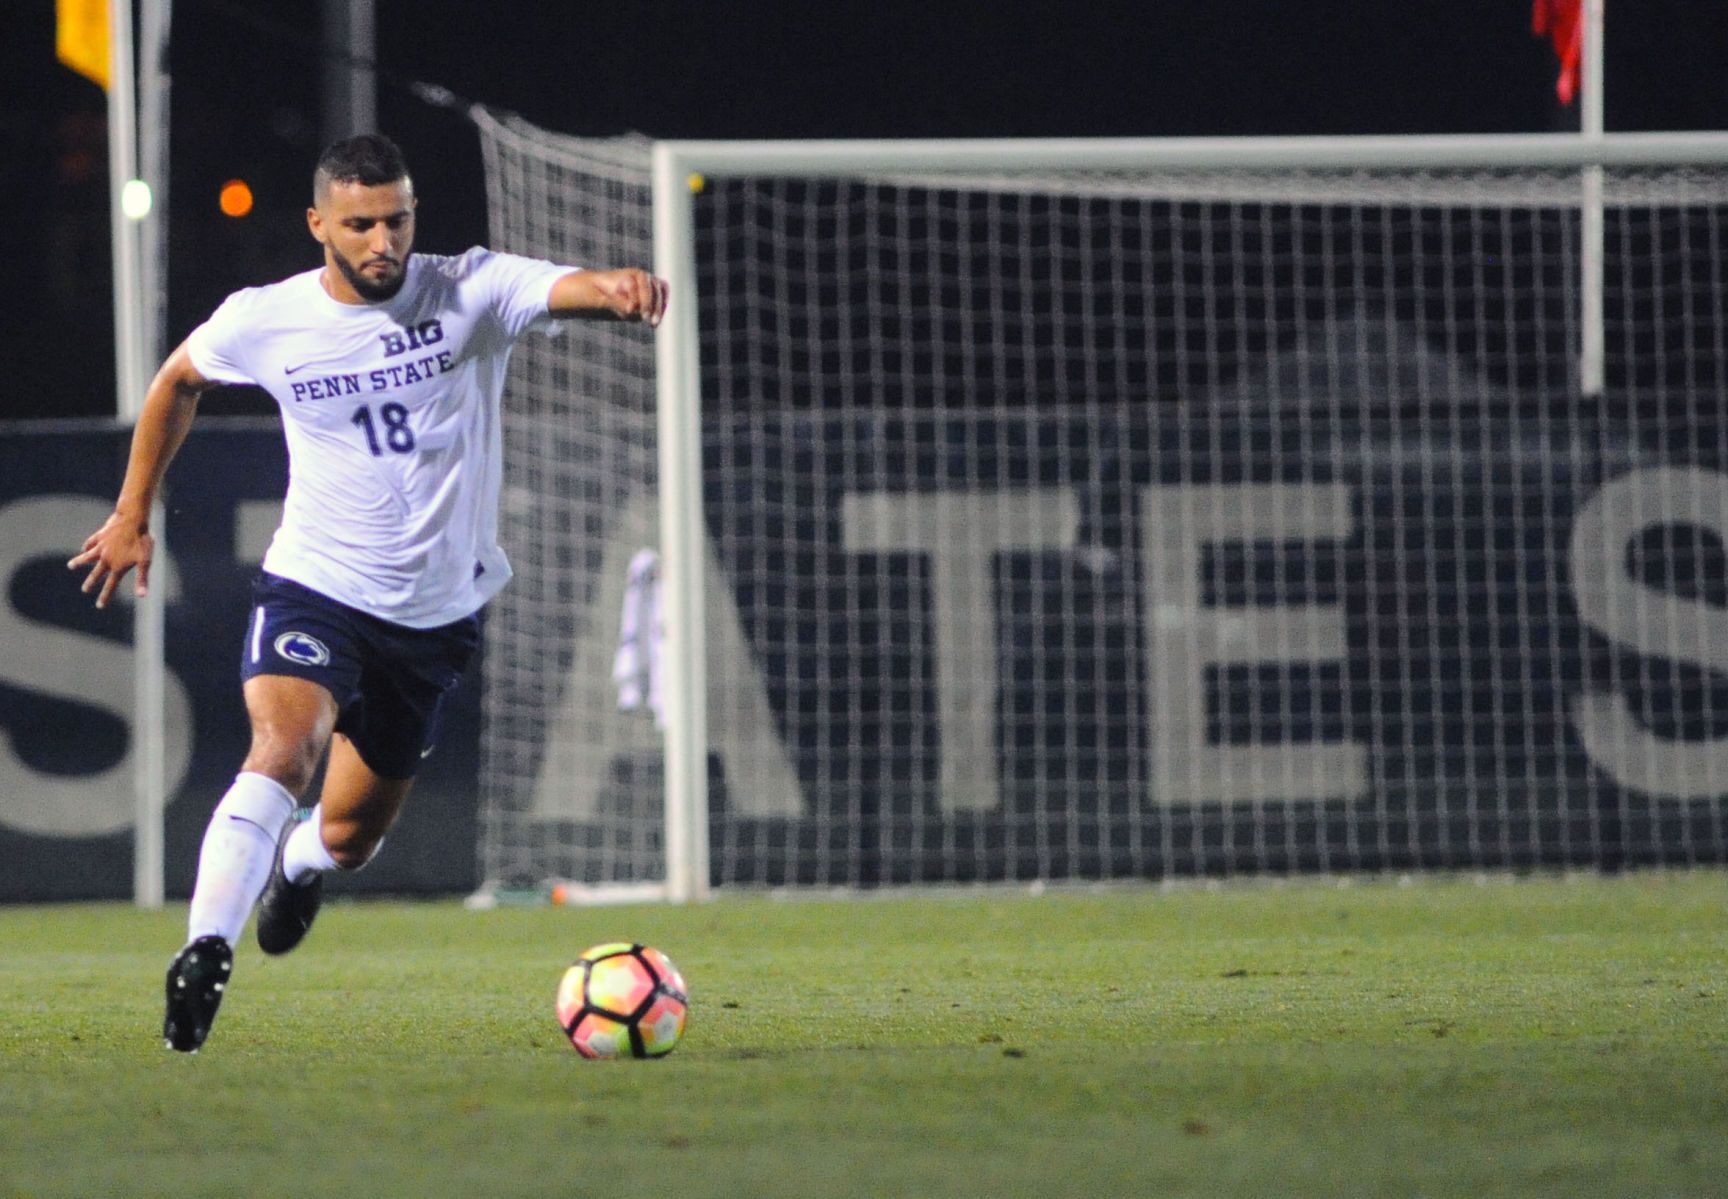 No. 6 Penn State hopes to start fast against Akron